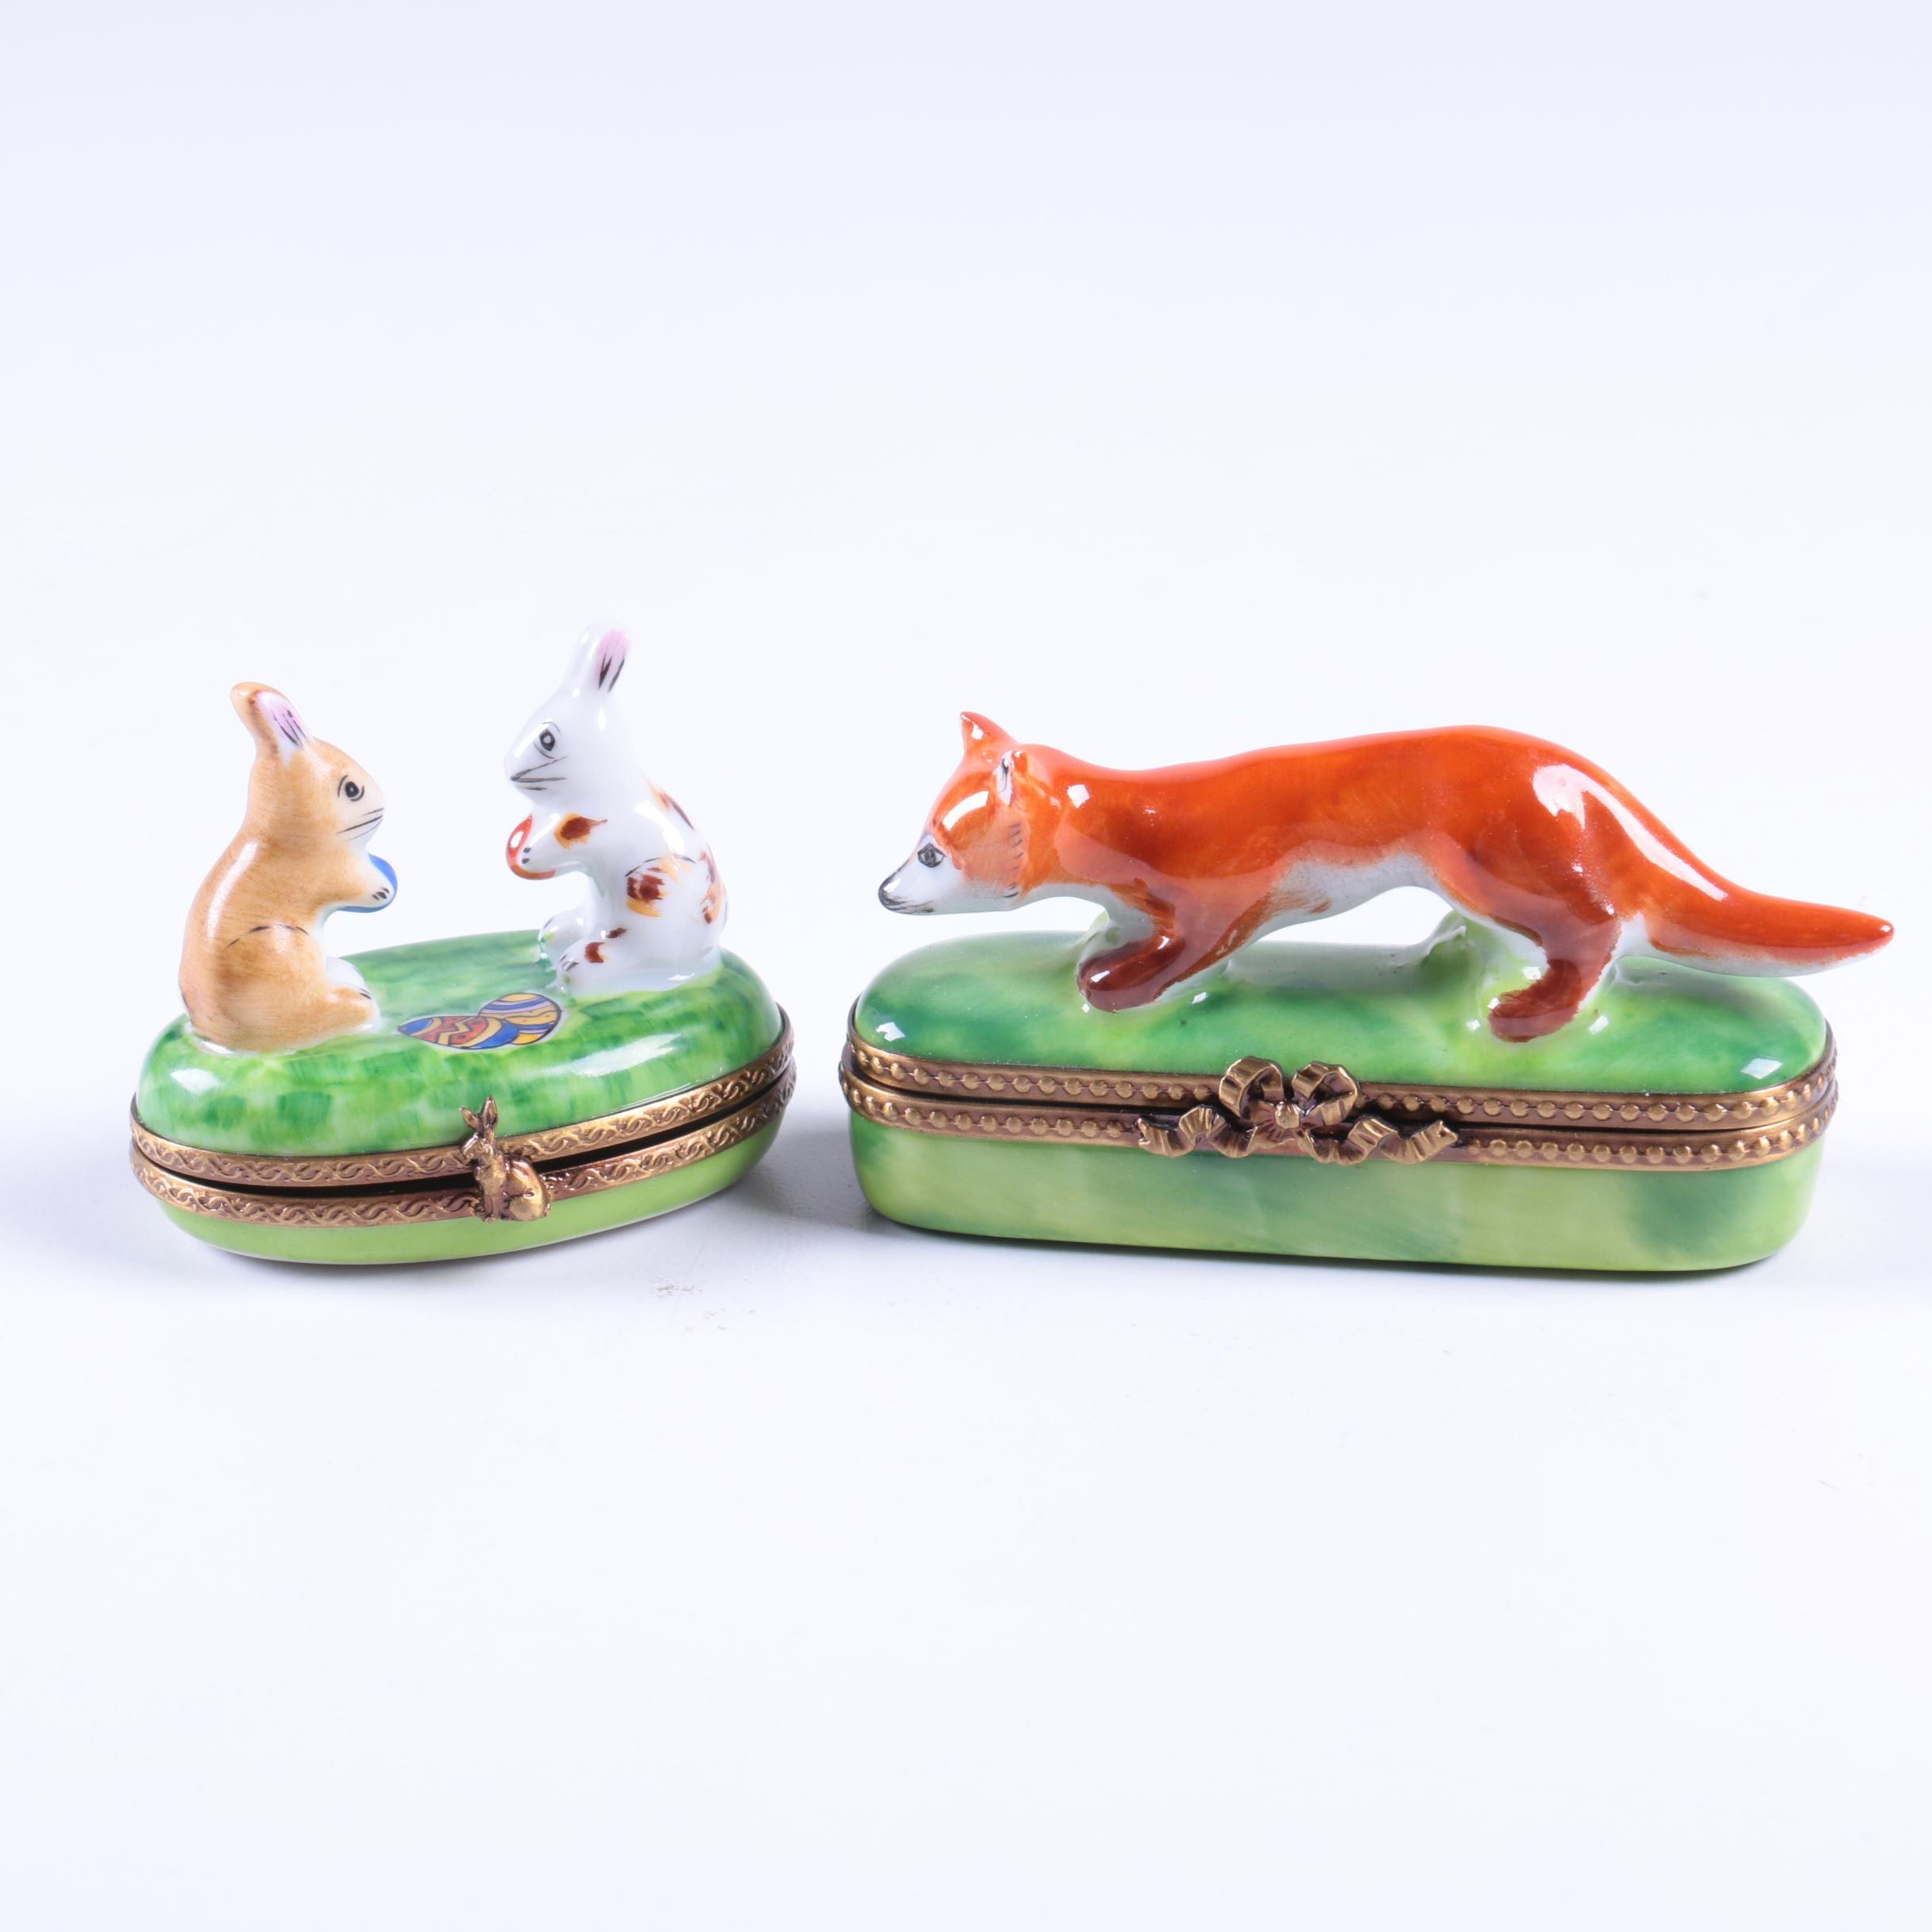 Limoges Porcelain Novelty Rabbit and Fox Boxes